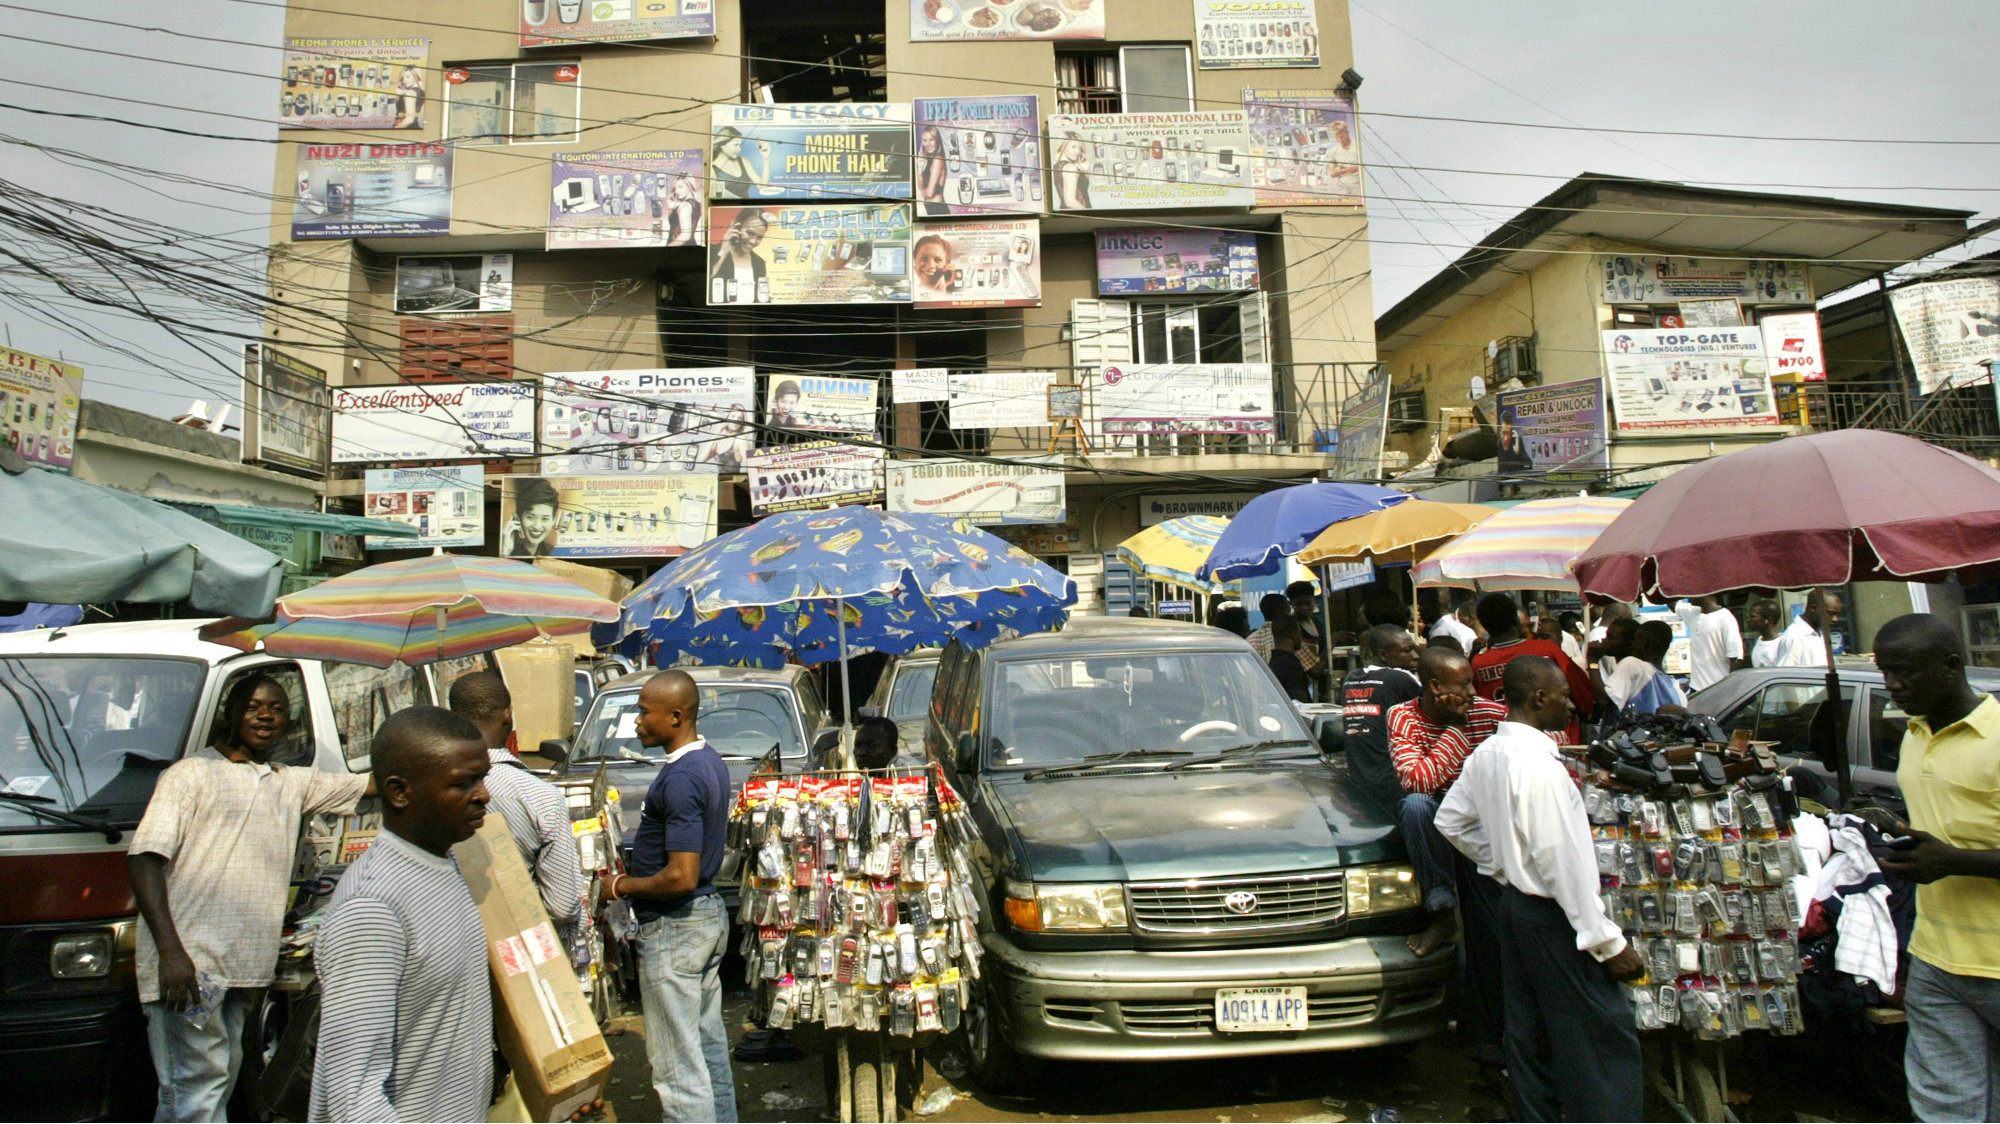 People buy telephones and computer software at the computer village in Lagos, Nigeria, Tuesday, March, 14 2006. Peddlers of pirated software now hold sway on the very streets where drug dealers and prostitutes plied their wares a decade ago in the Ikeja district of Nigeria's biggest city of Lagos. Where renowned musician Fela Anikulapo-Kuti appeared at the popular stage venue, every building is now packed with computer and cell phone companies and business is also done on the streets.